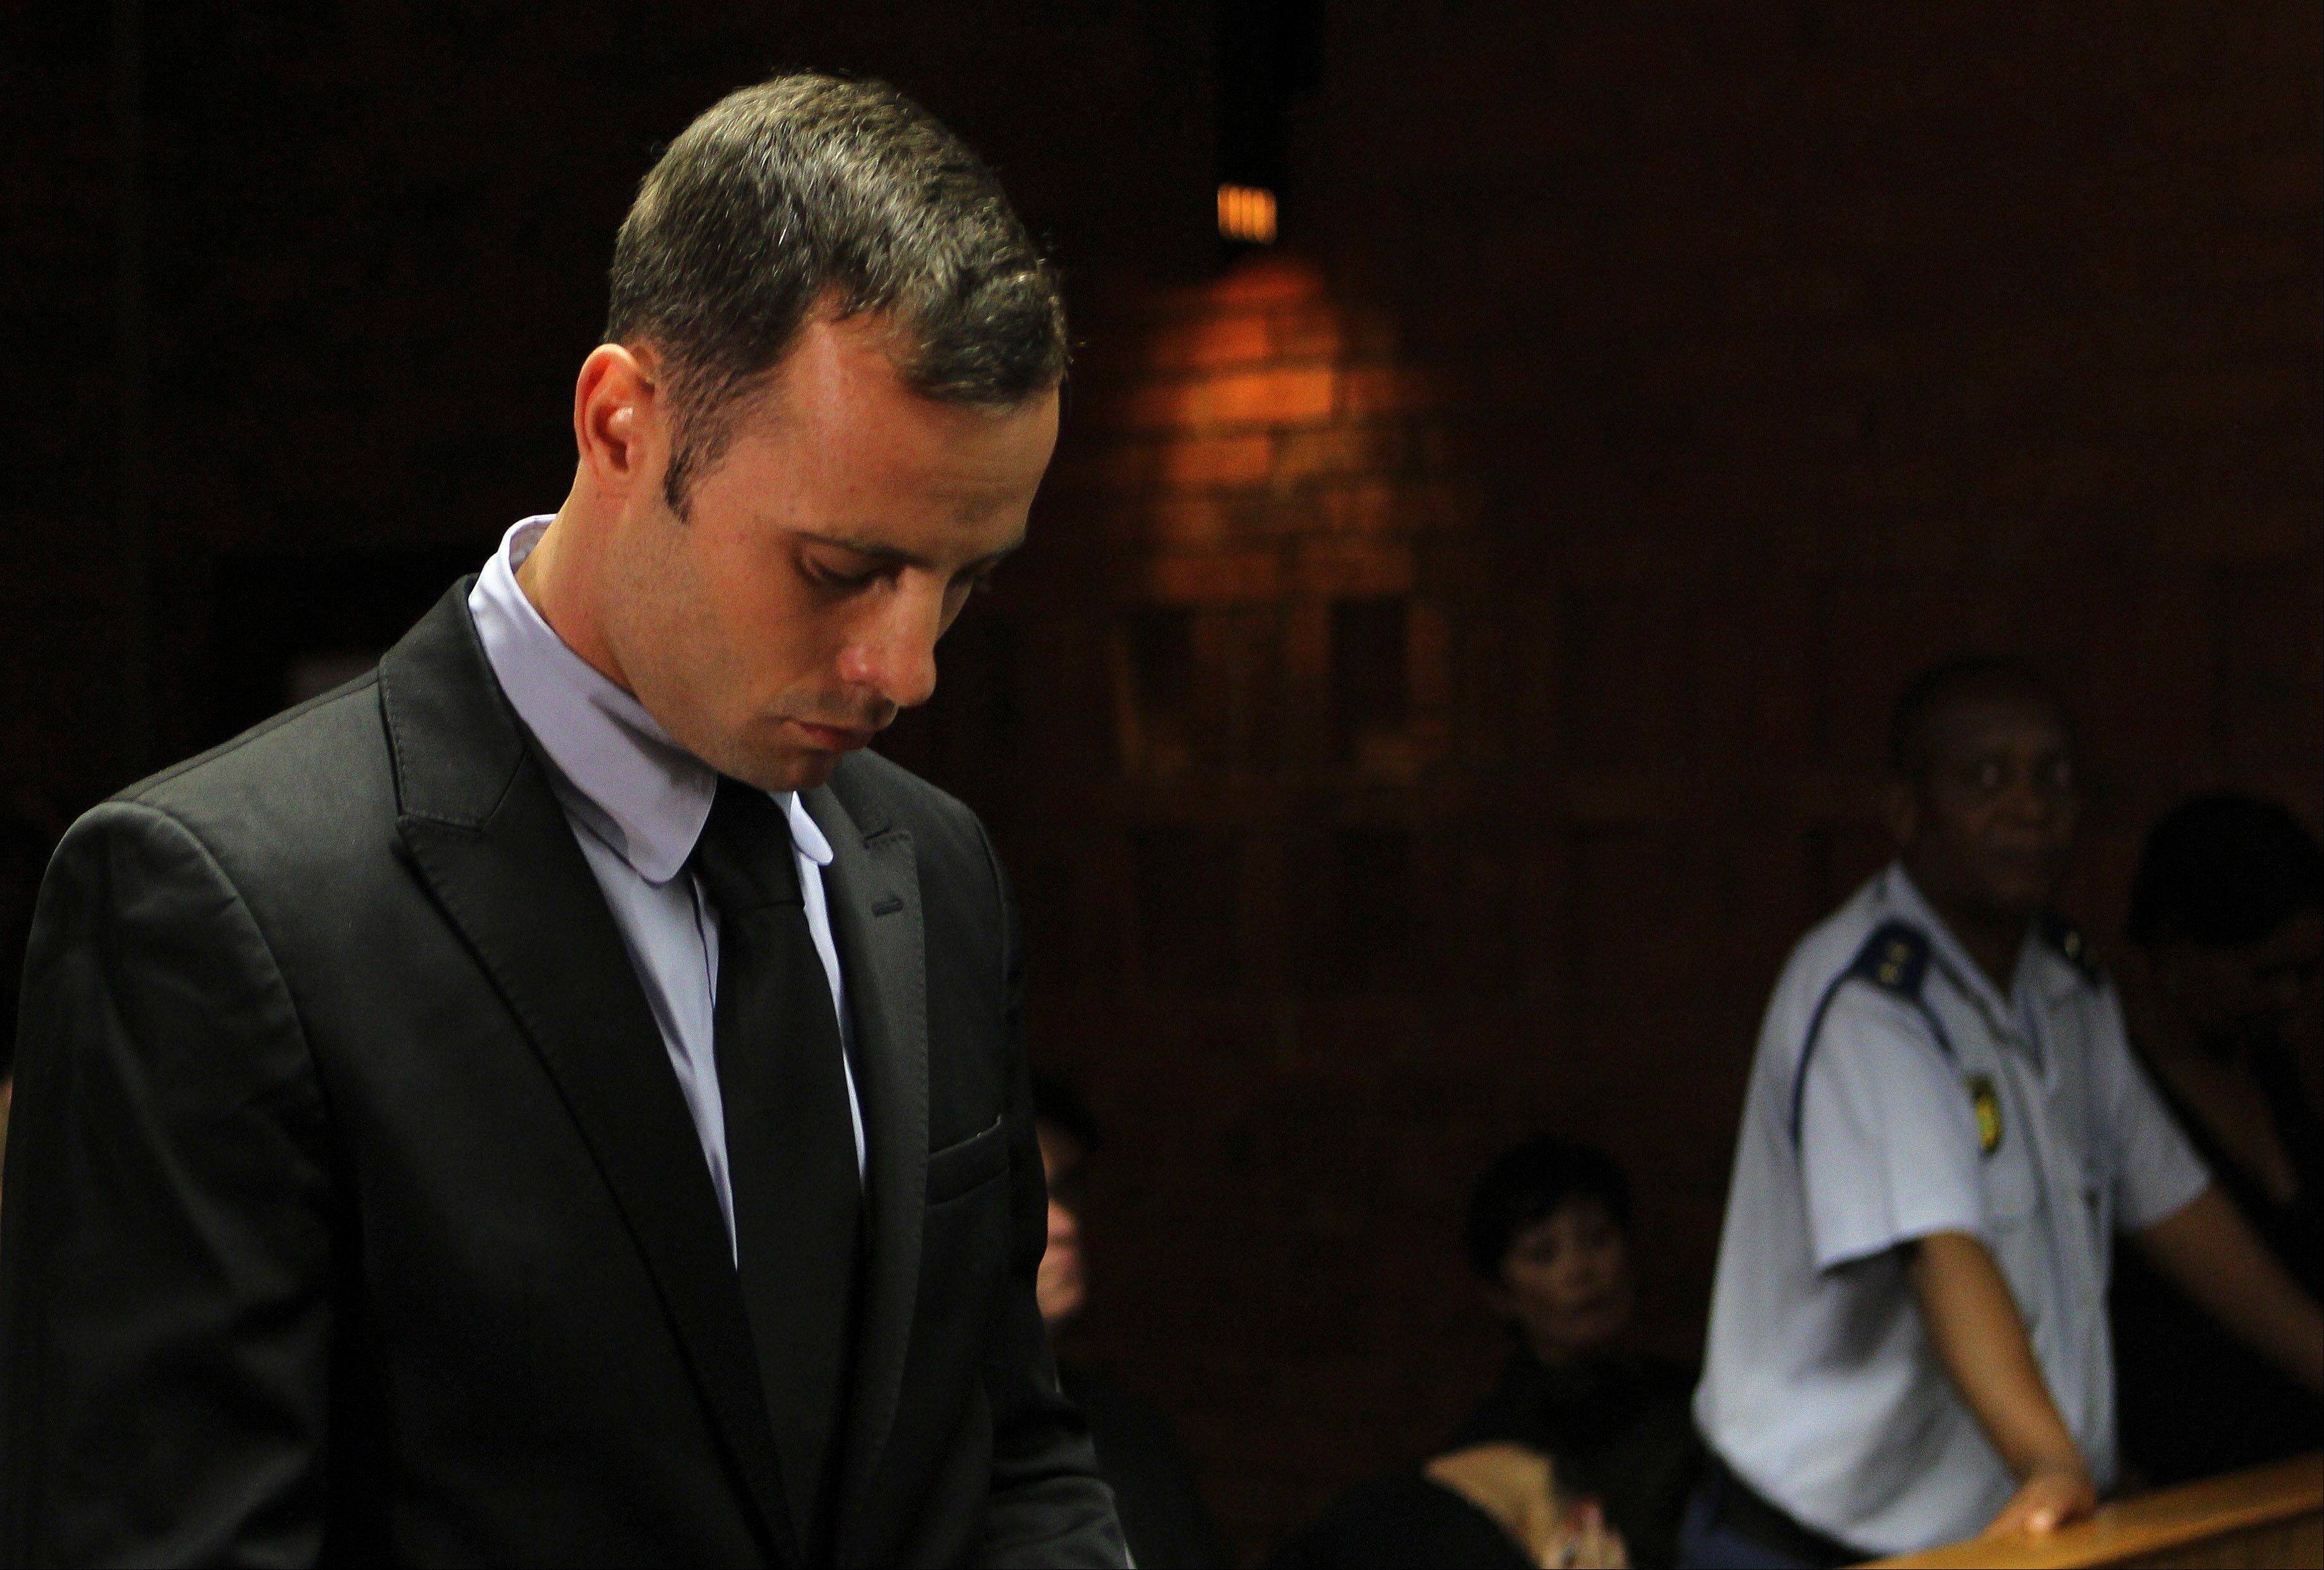 Olympic athlete Oscar Pistorius stands inside the court as a police officer looks on during his bail hearing at the magistrate court in Pretoria, South Africa, Wednesday, Feb. 20, 2013.